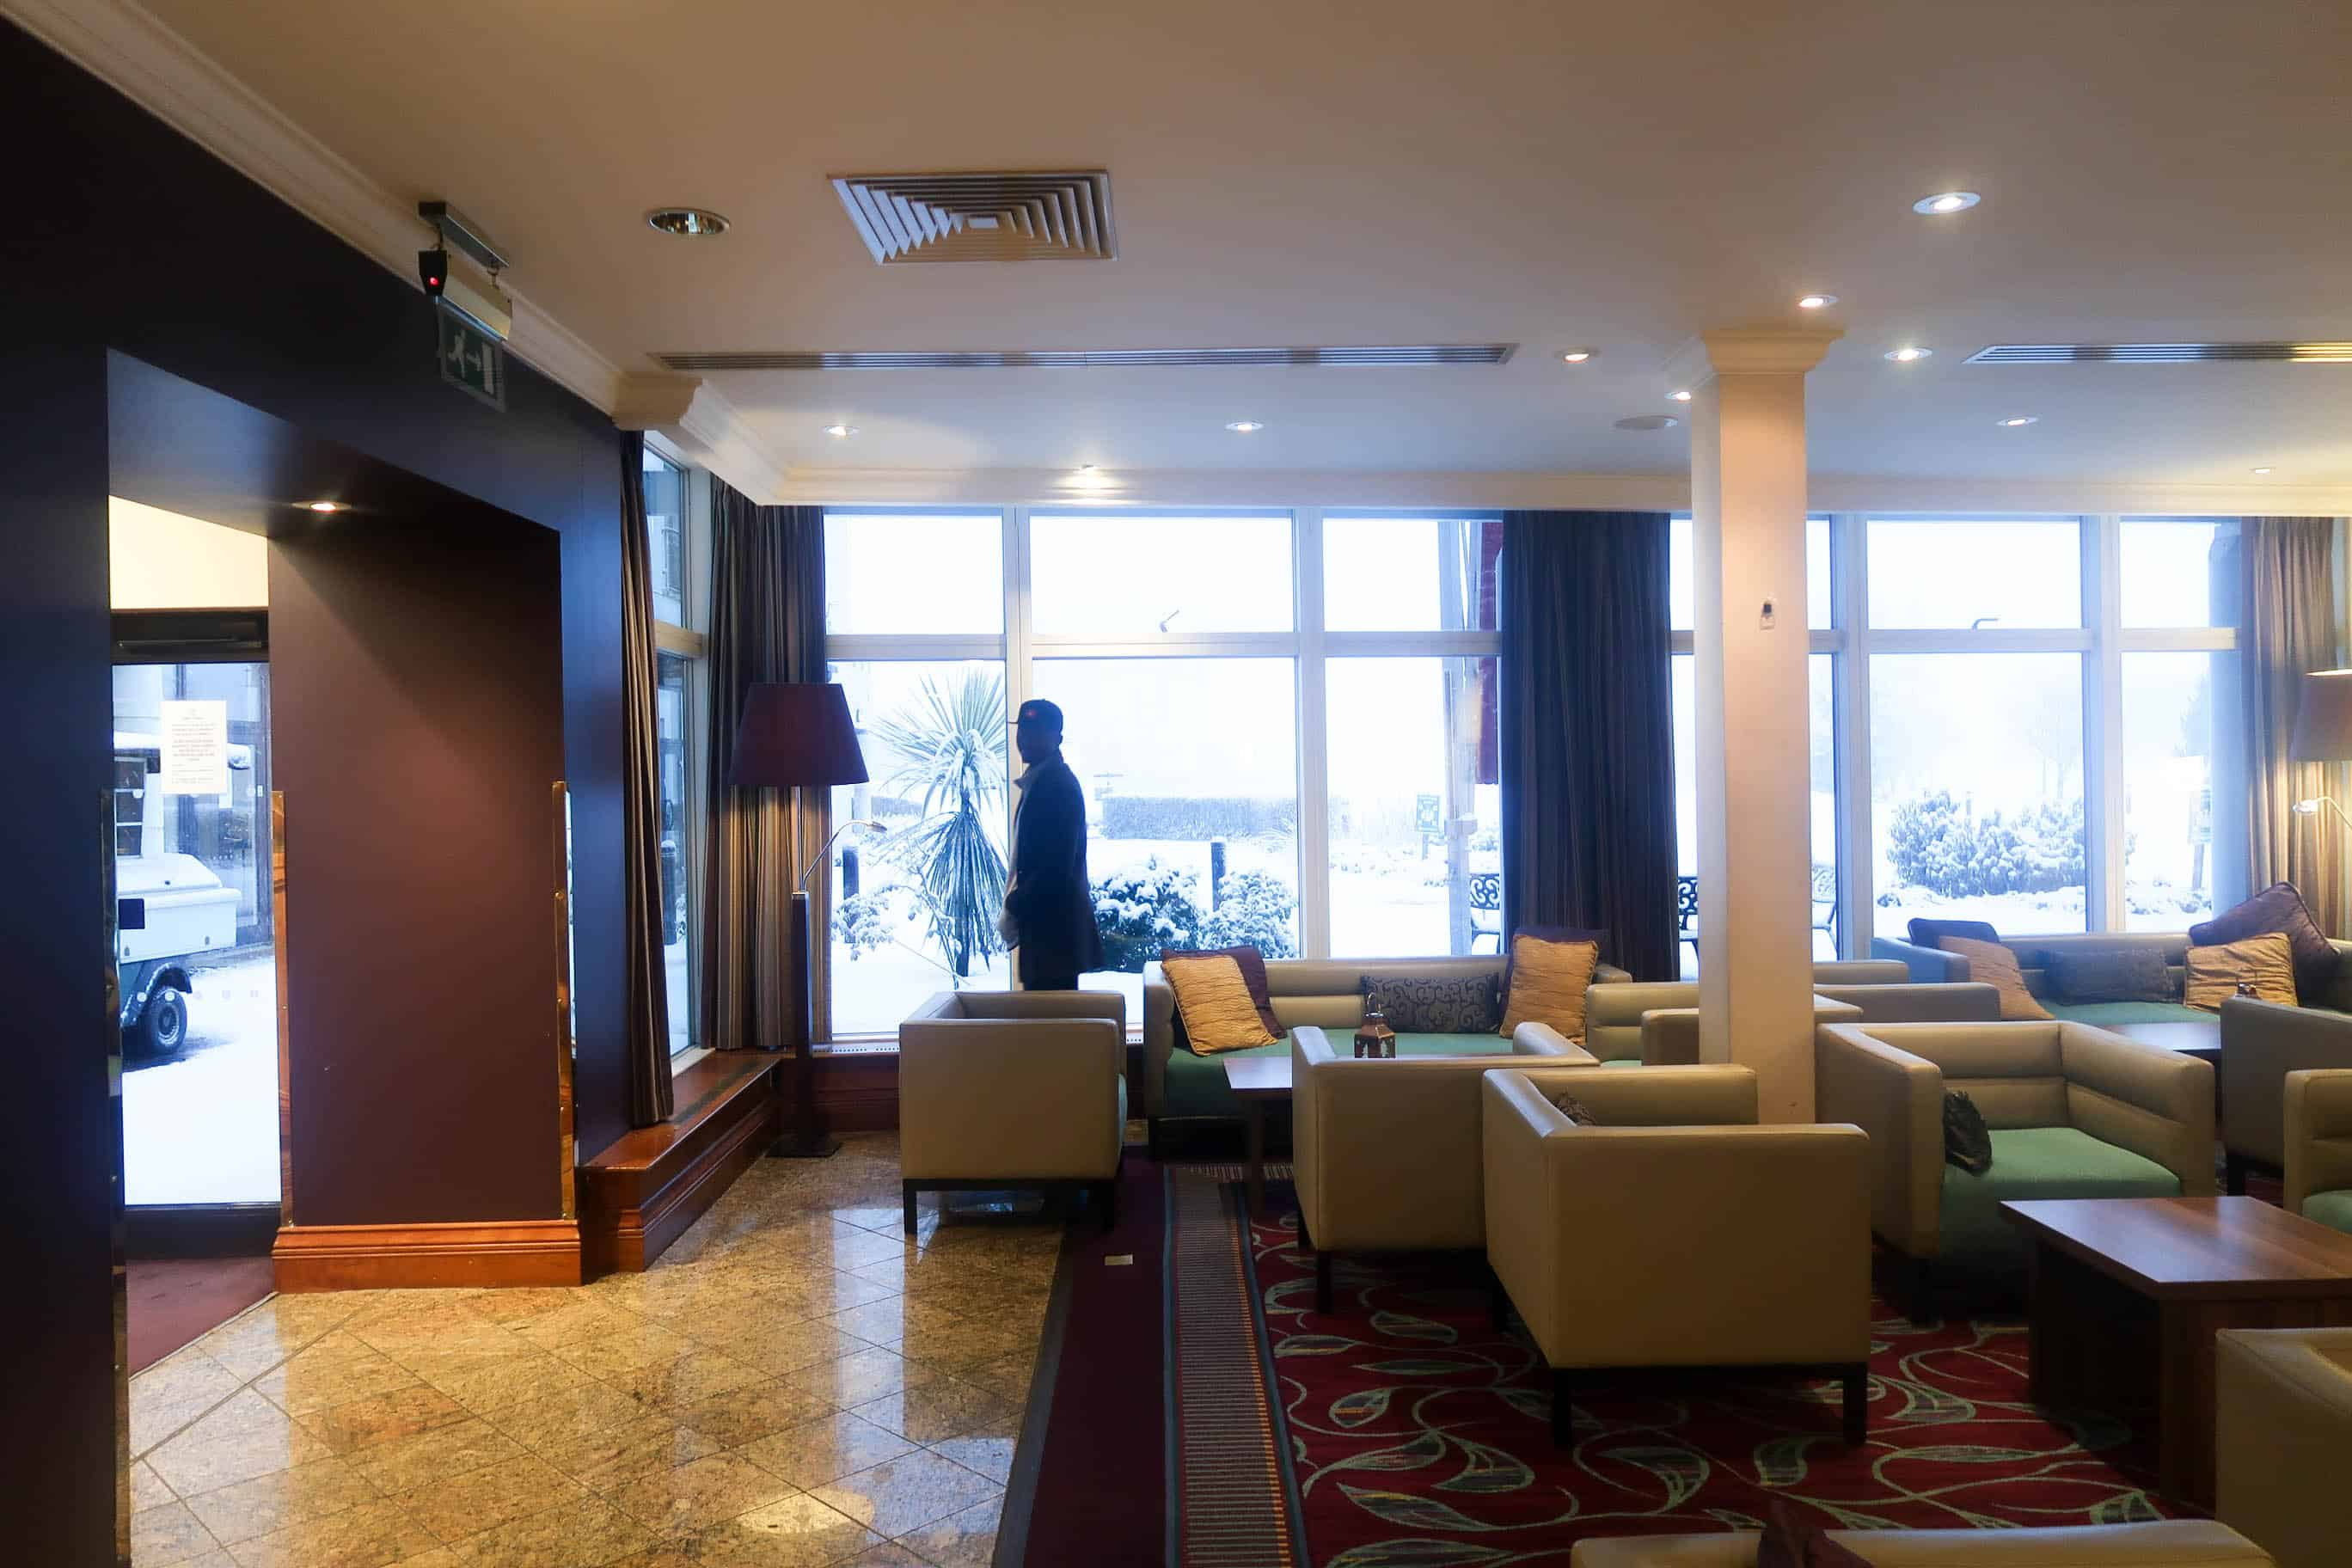 Hotels to stay in Belfast cheap, clean and spacious